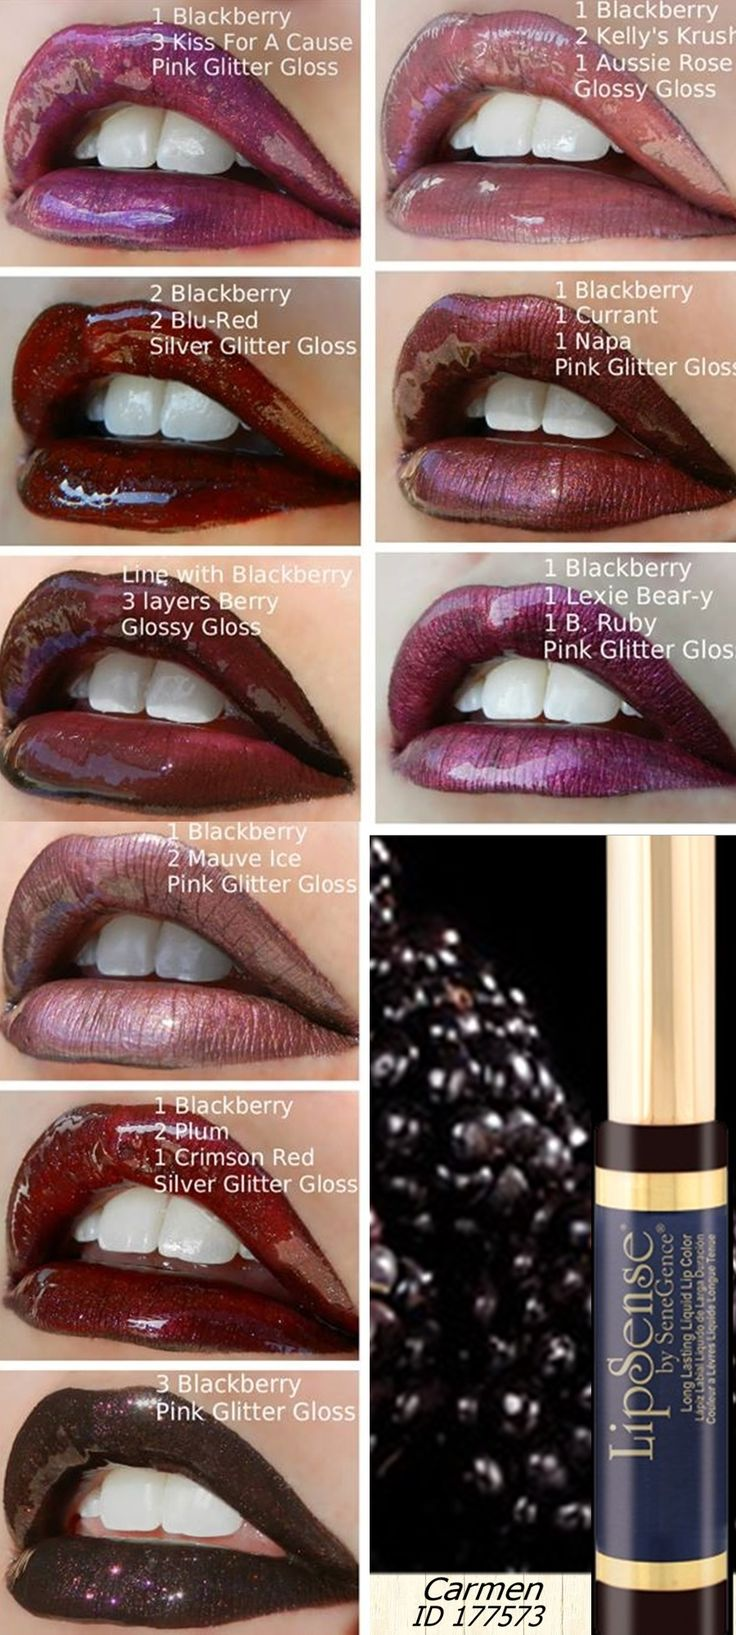 Blackberry LipSense is a must-have for layering colour! Blackberry beautifully deepens any LipSense shade by creating a rich, dark base. For more info contact us info@longlastinglipstick.com.au